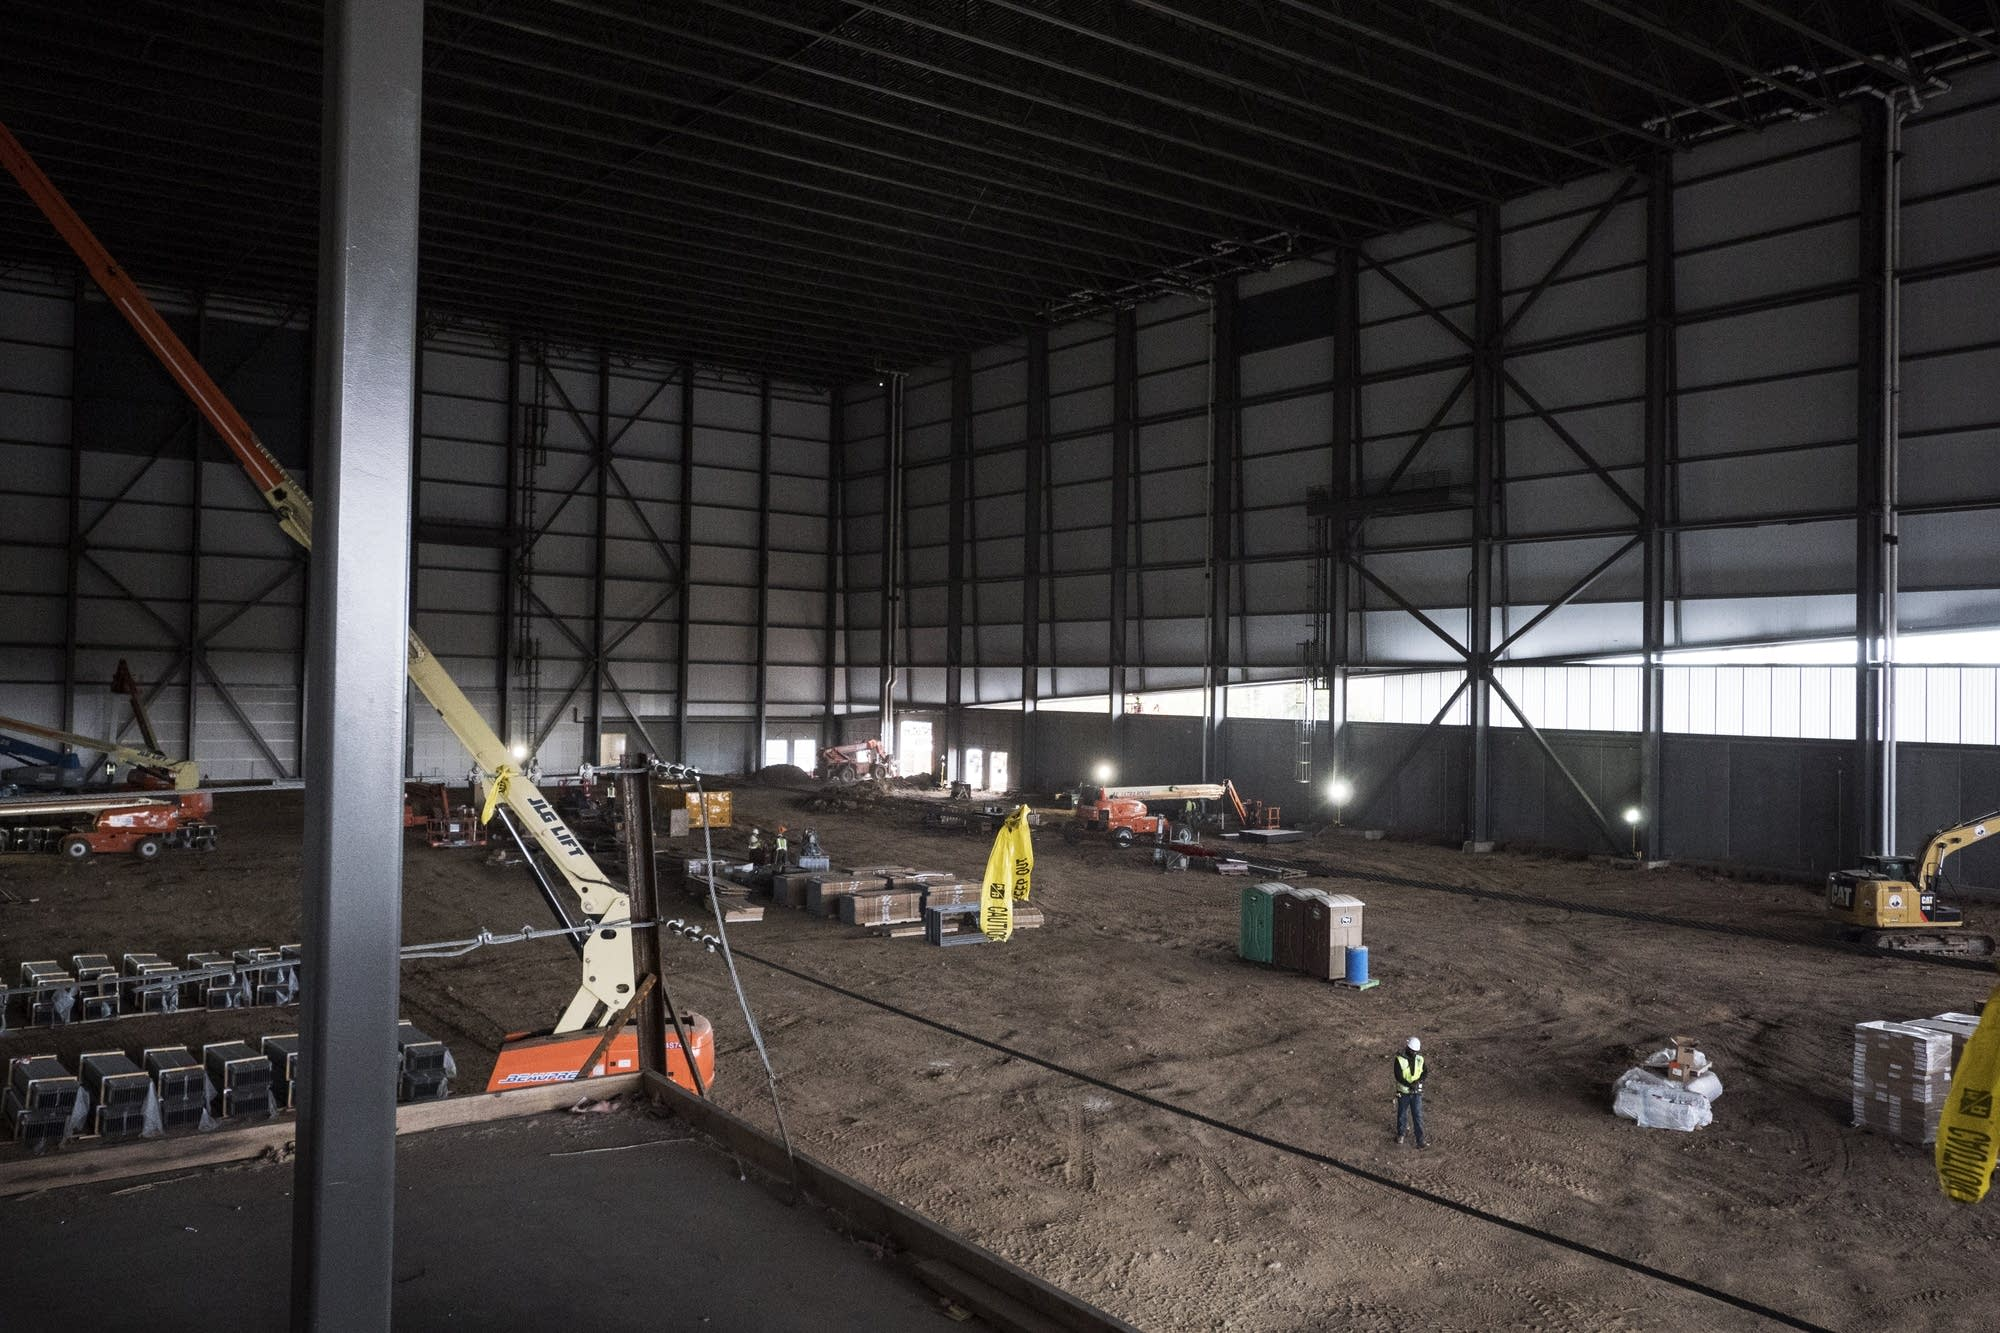 The indoor climate-controlled practice field is under construction.